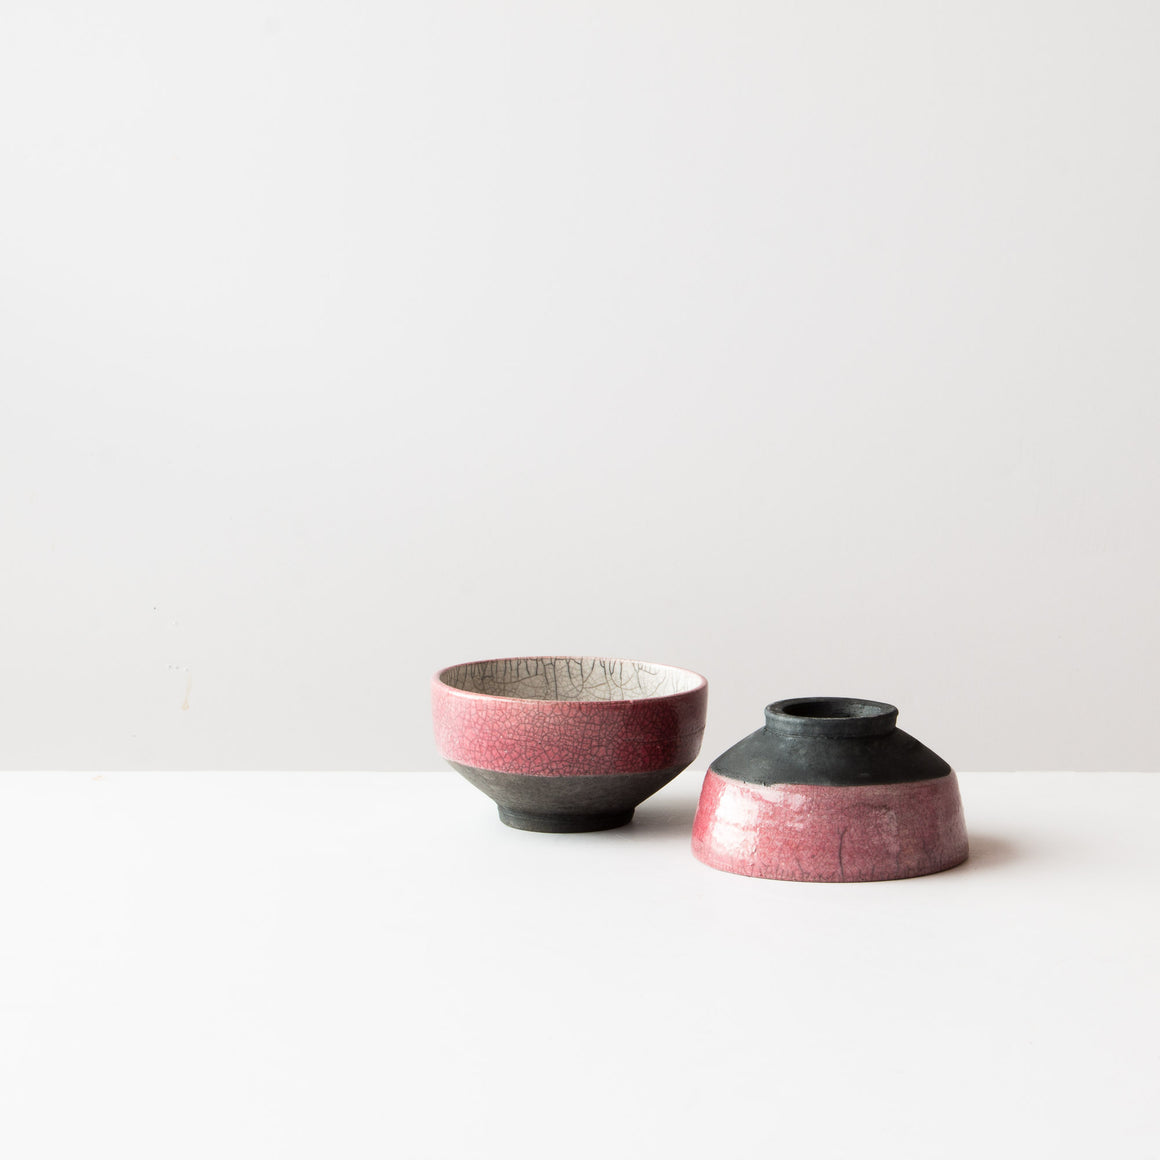 A Pile of Handmade Pink Raku Pottery Tea Cups - Chawan Tea Bowls - Sold by Chic & Basta